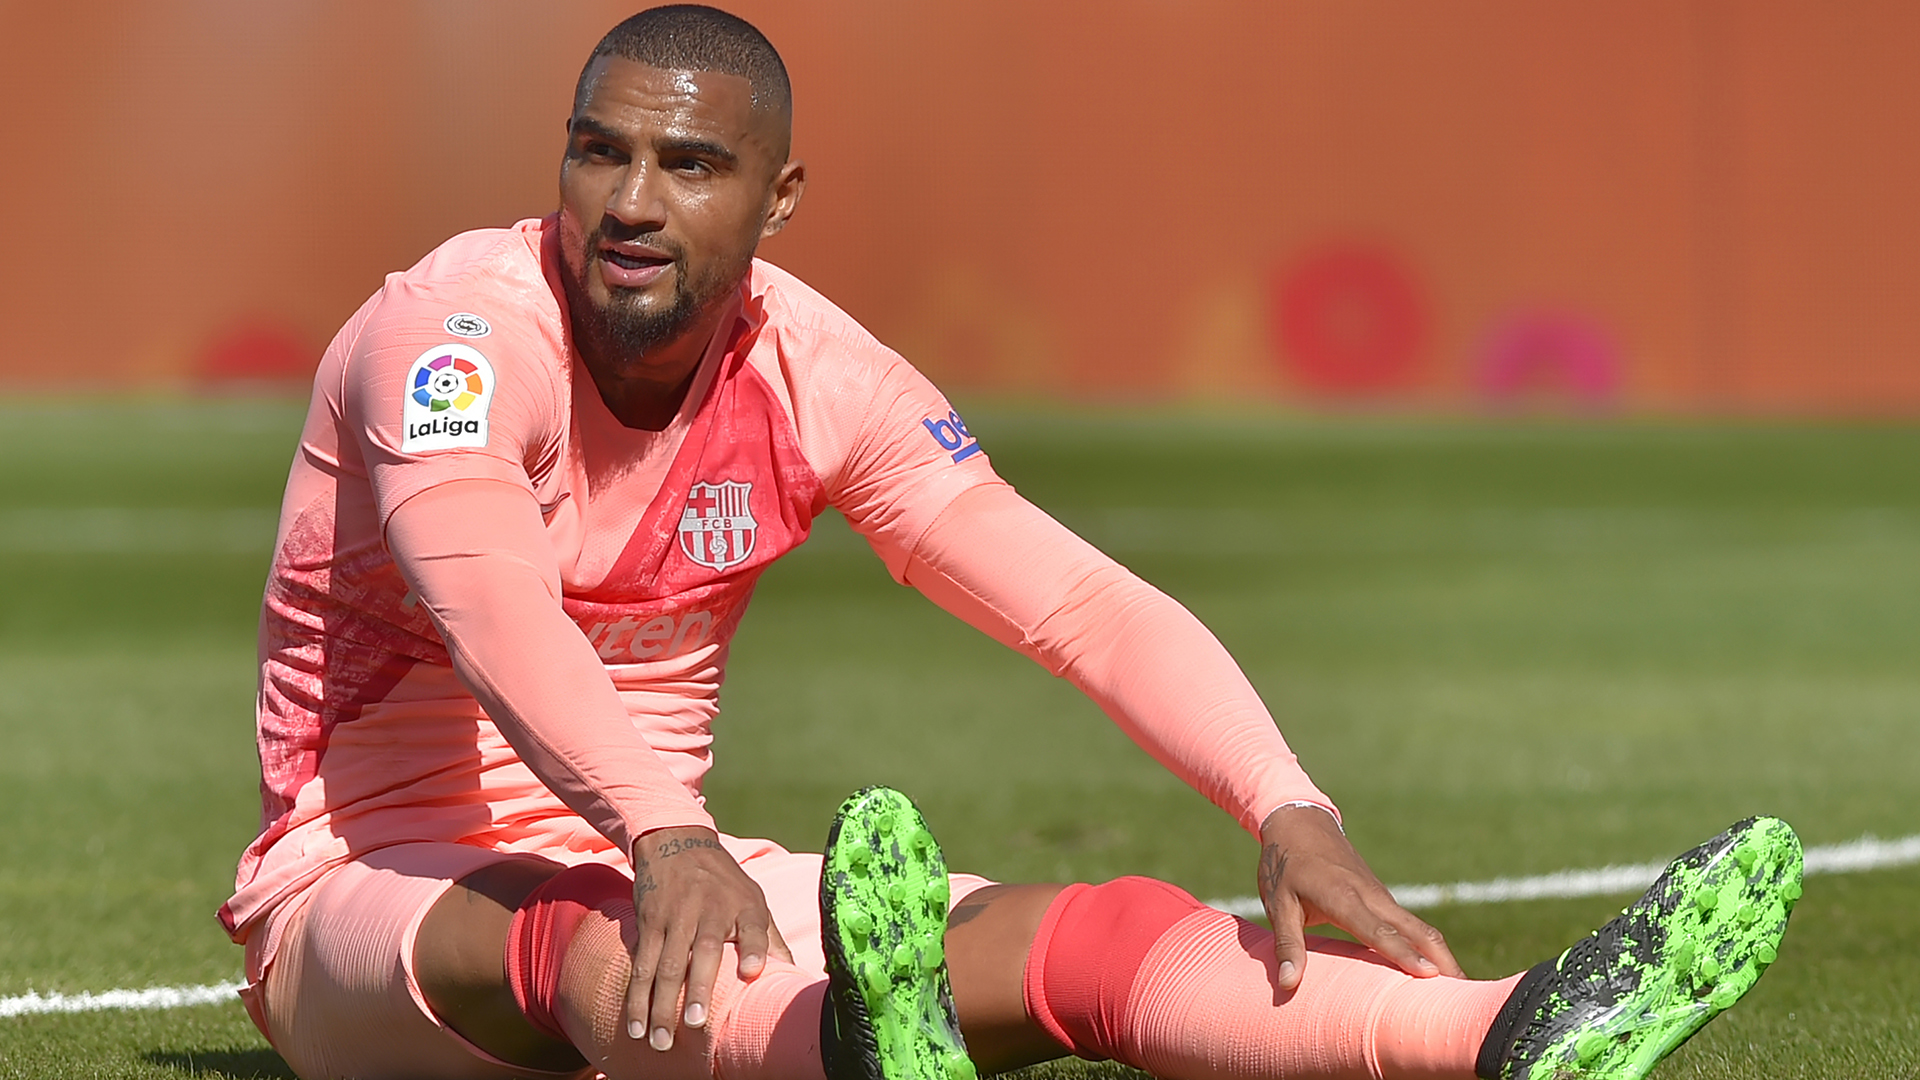 African All Stars Transfer News & Rumours: Eintracht Frankfurt want Kevin-Prince Boateng back in Germany